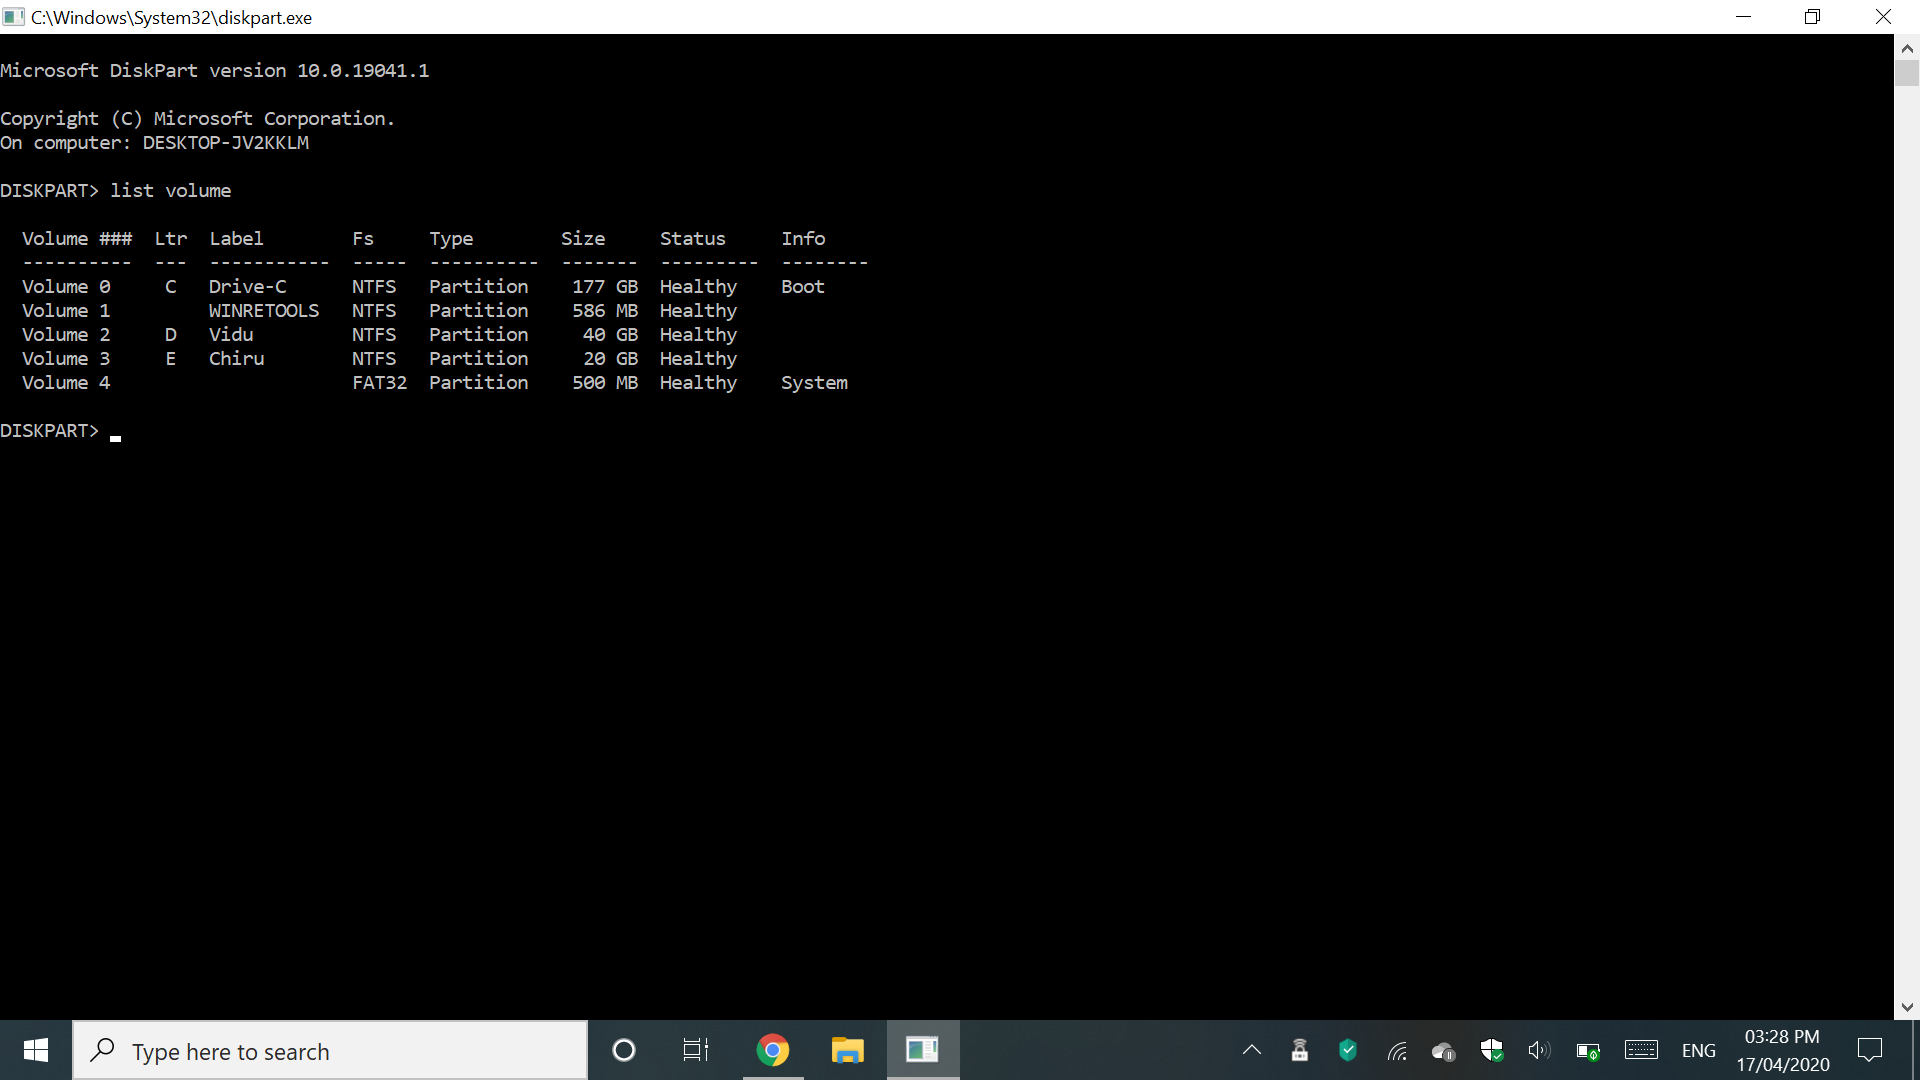 Recovery Partition 6b9b2a2d-866c-417f-867d-bbc341417878?upload=true.png